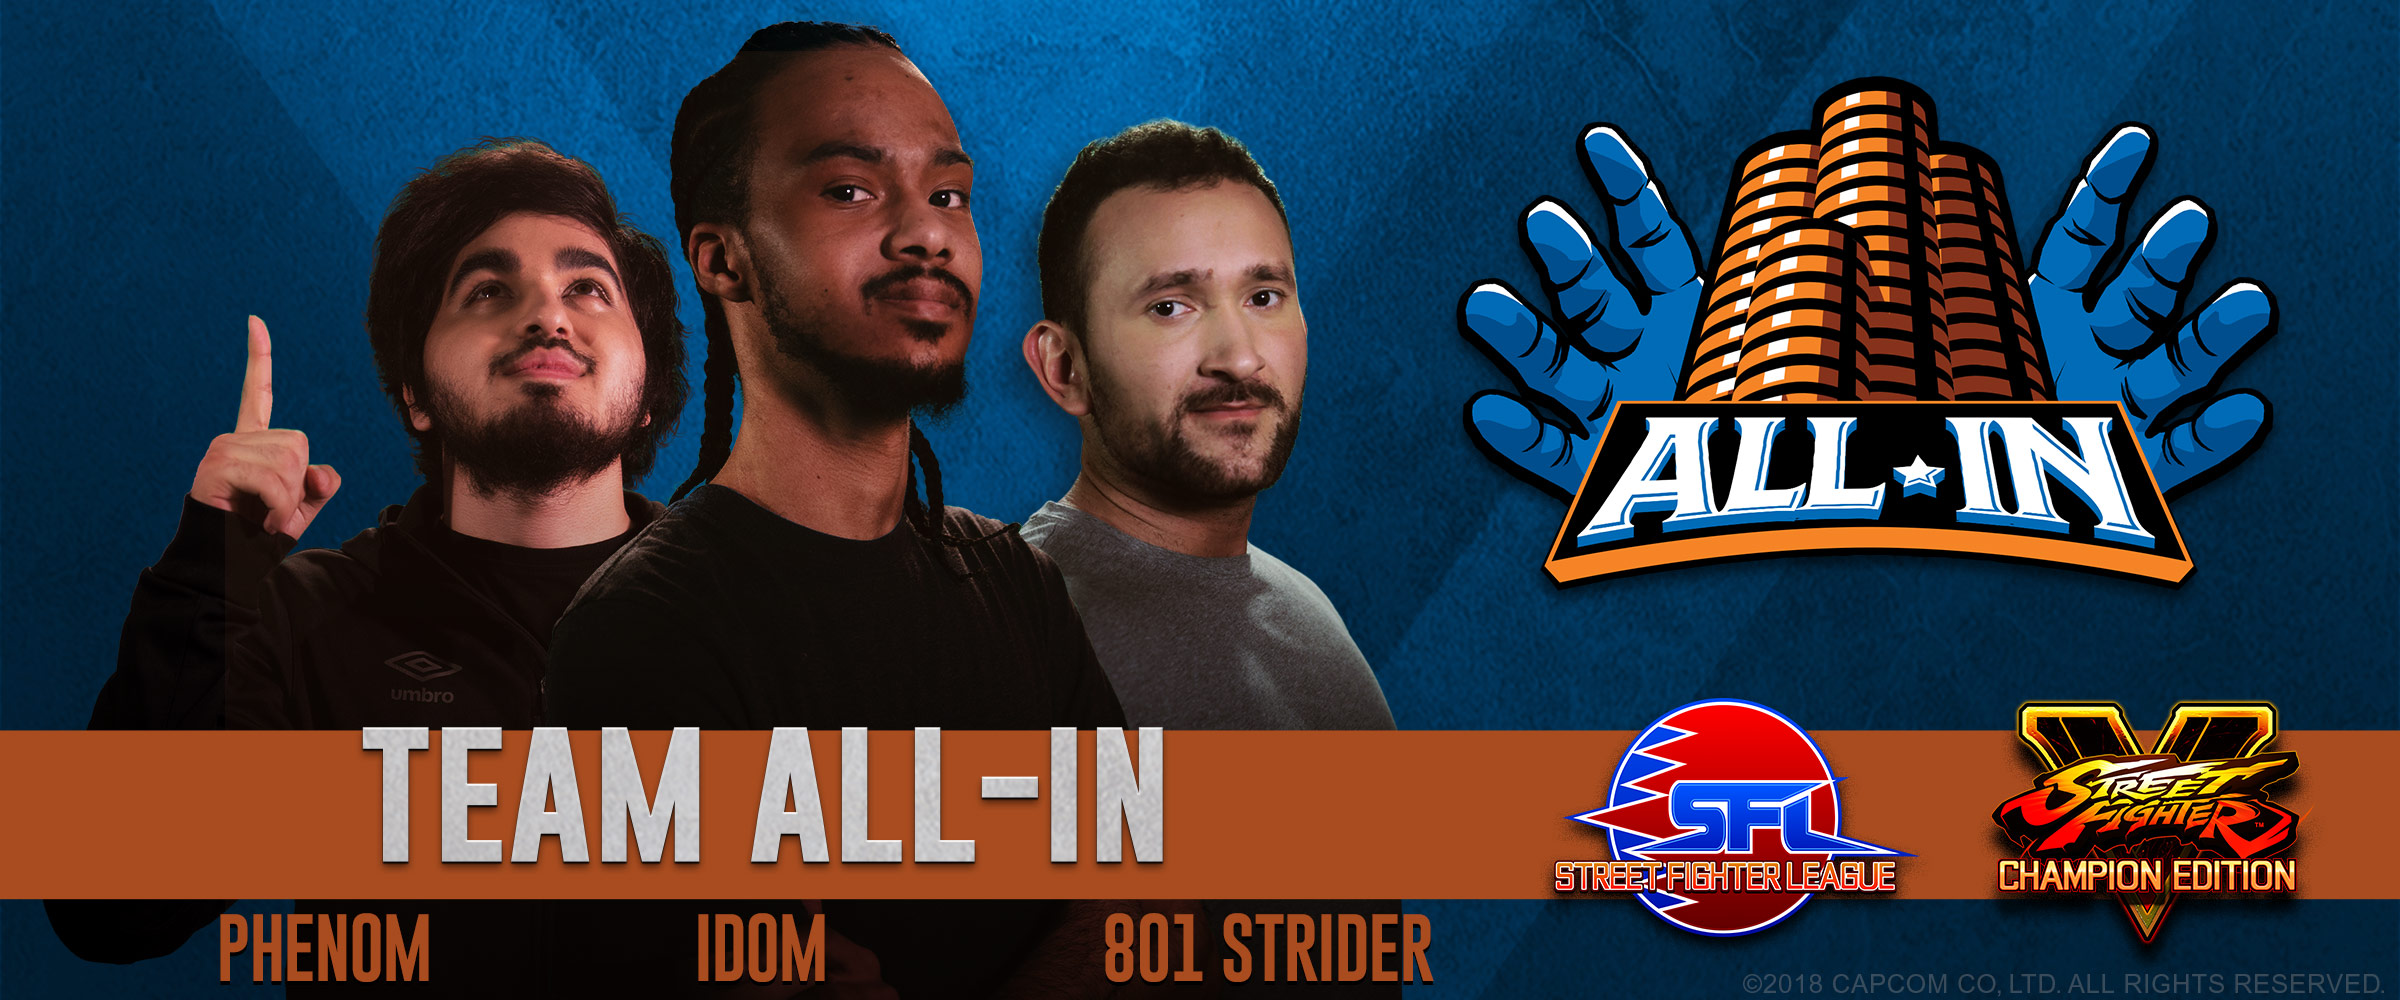 Introducing Team All-In